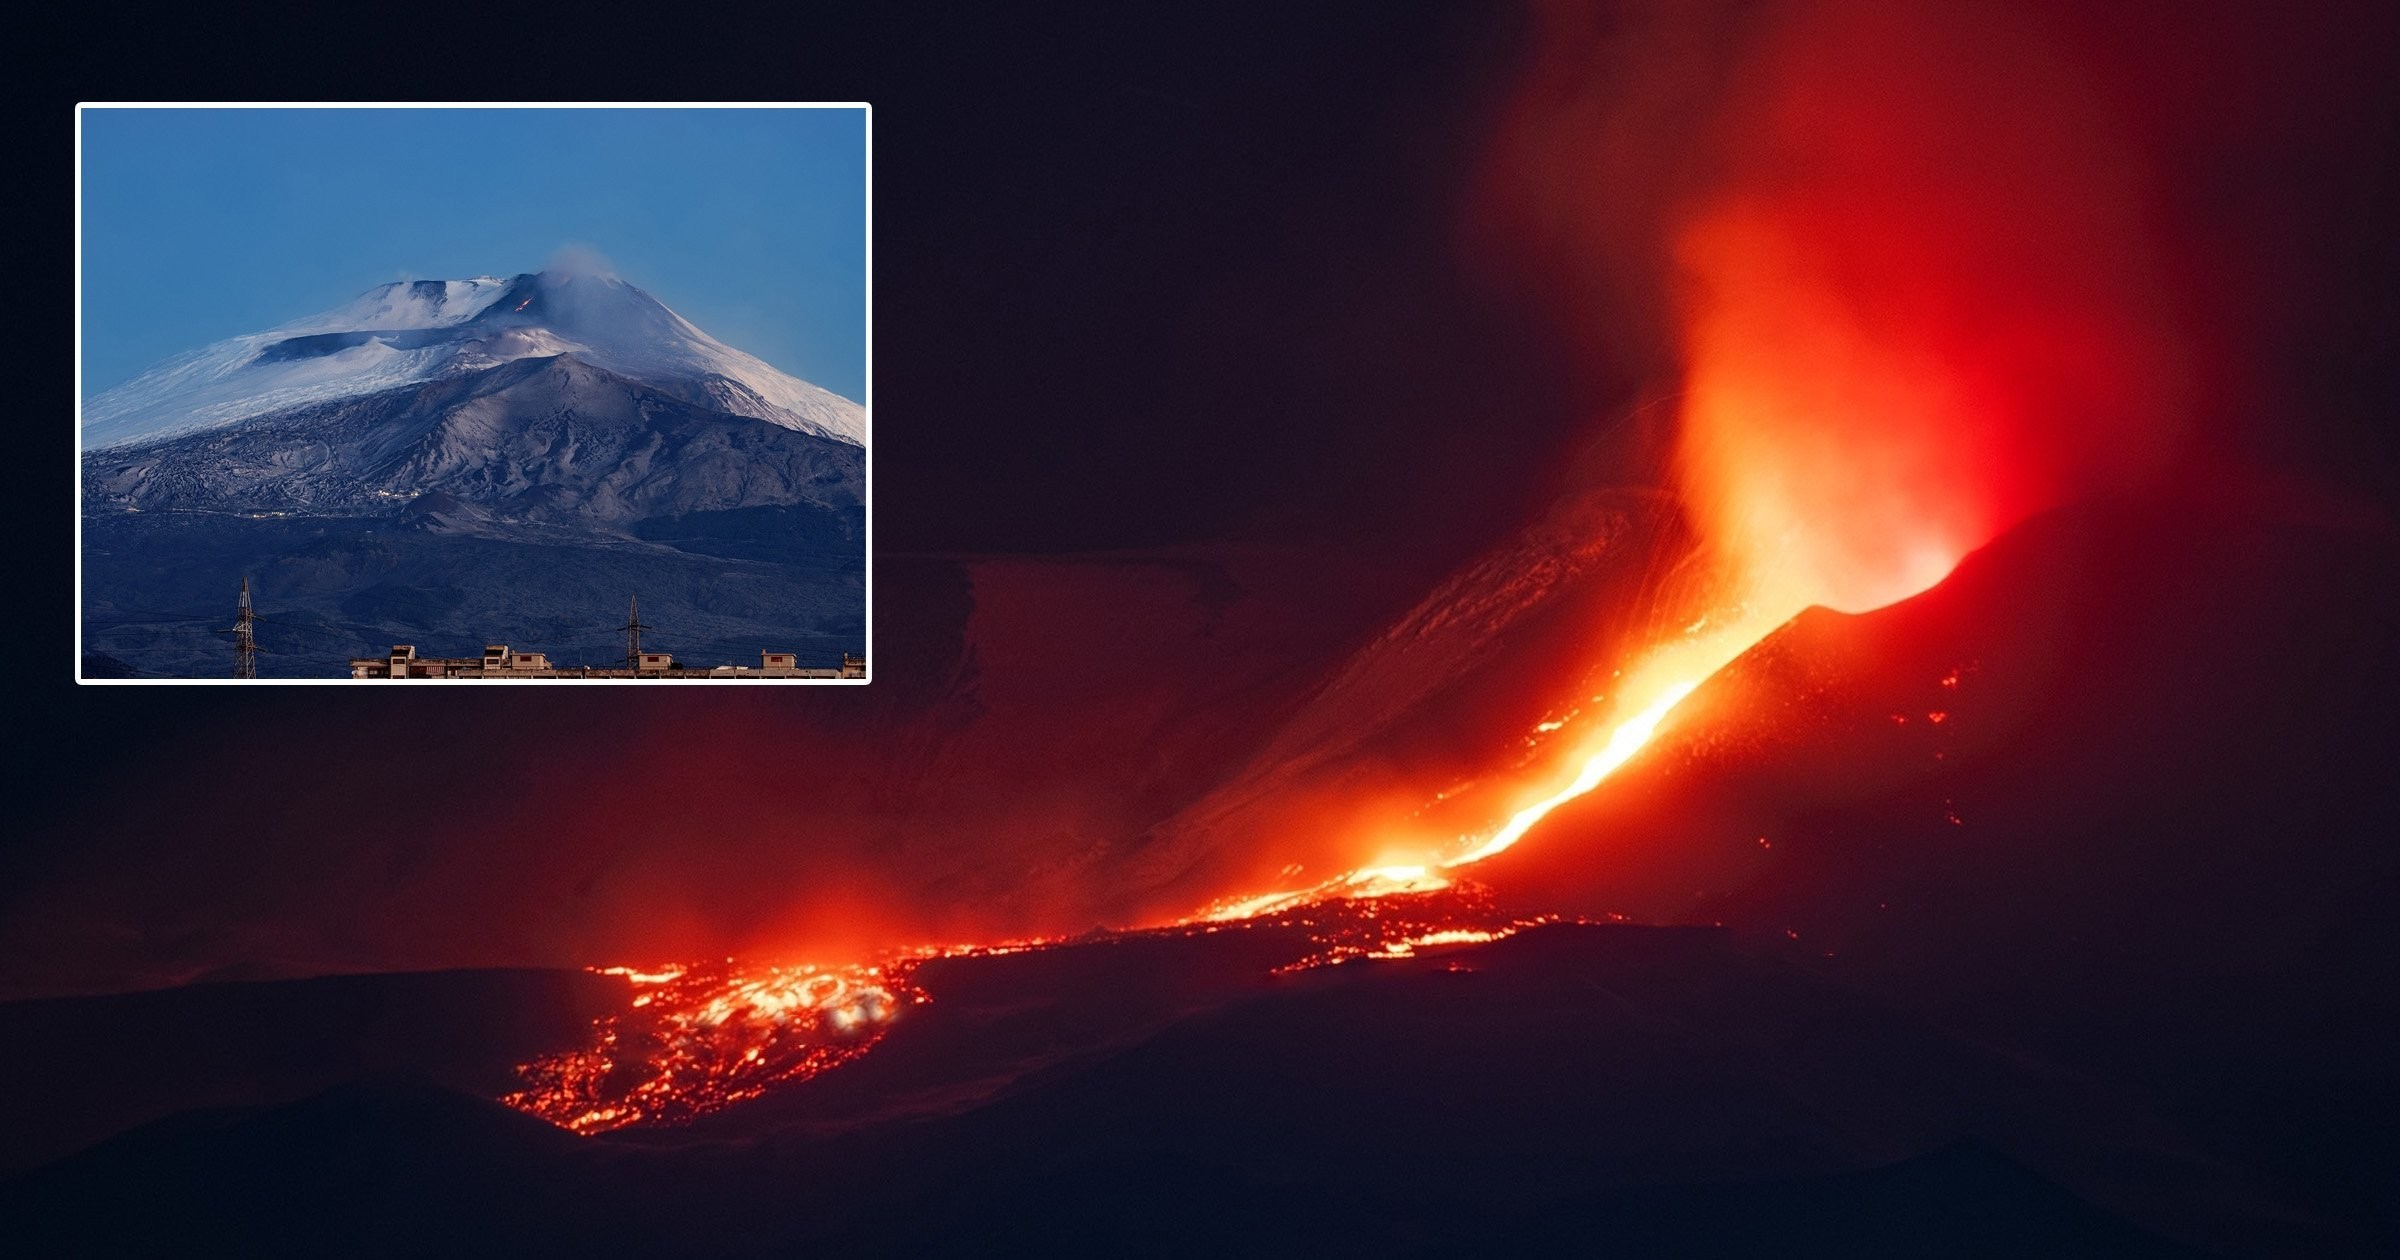 Mount Etna erupts spewing plumes of ash and lava into the sky